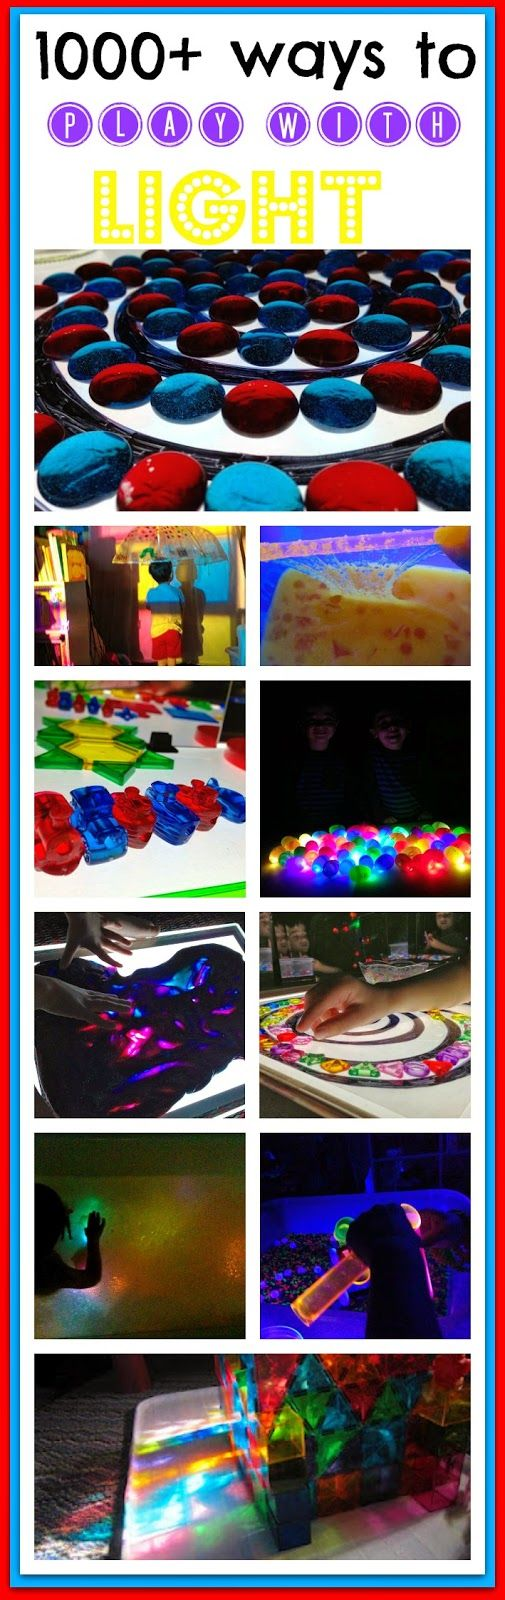 CAUTION! Twins at play!: INTRODUCING: The Ultimate Light Table Guide on Pinterest